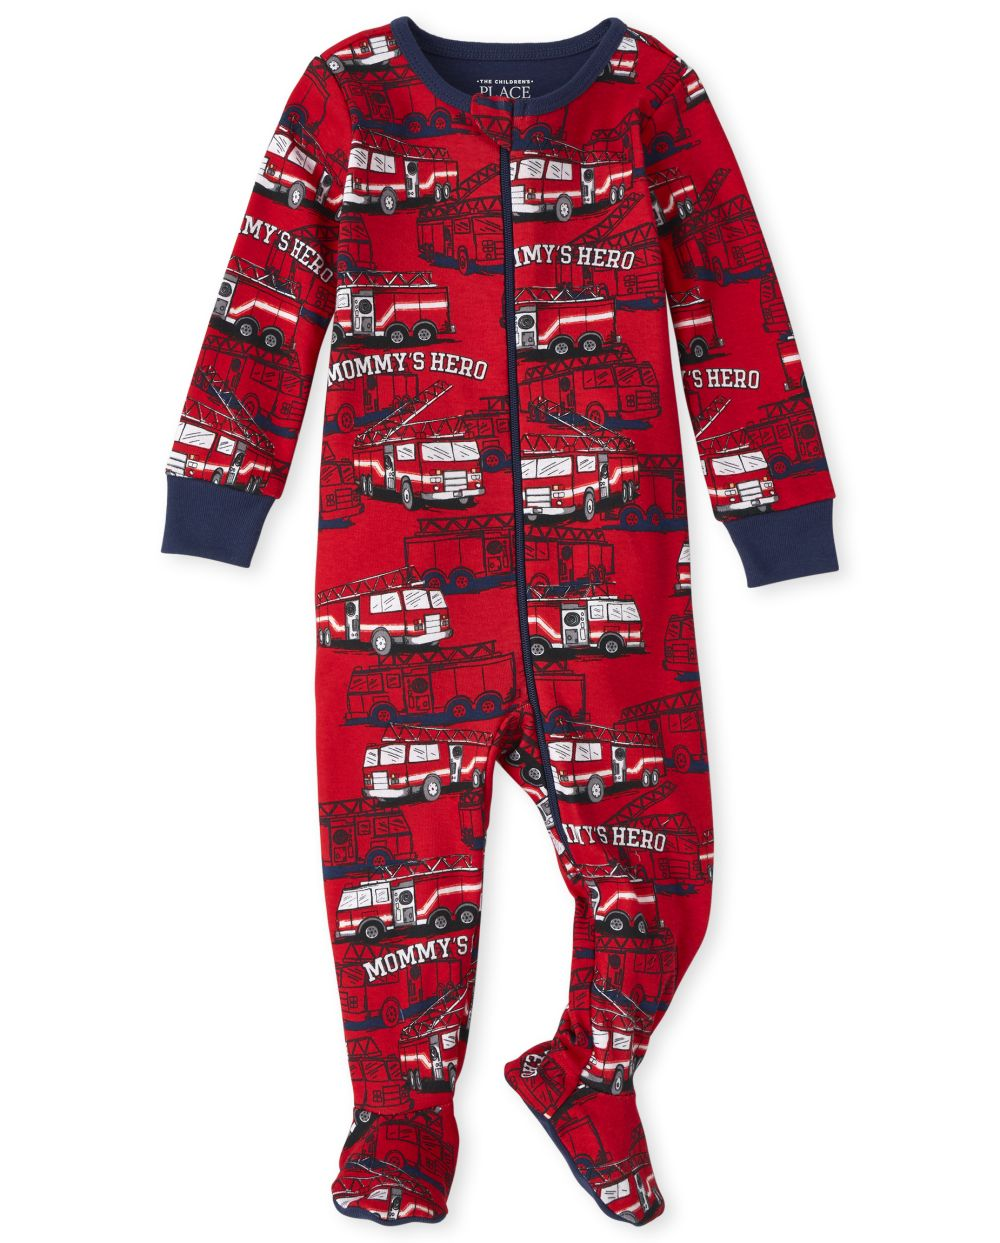 Baby And Toddler Boys Fire Truck Snug Fit Cotton One Piece Pajamas - Red